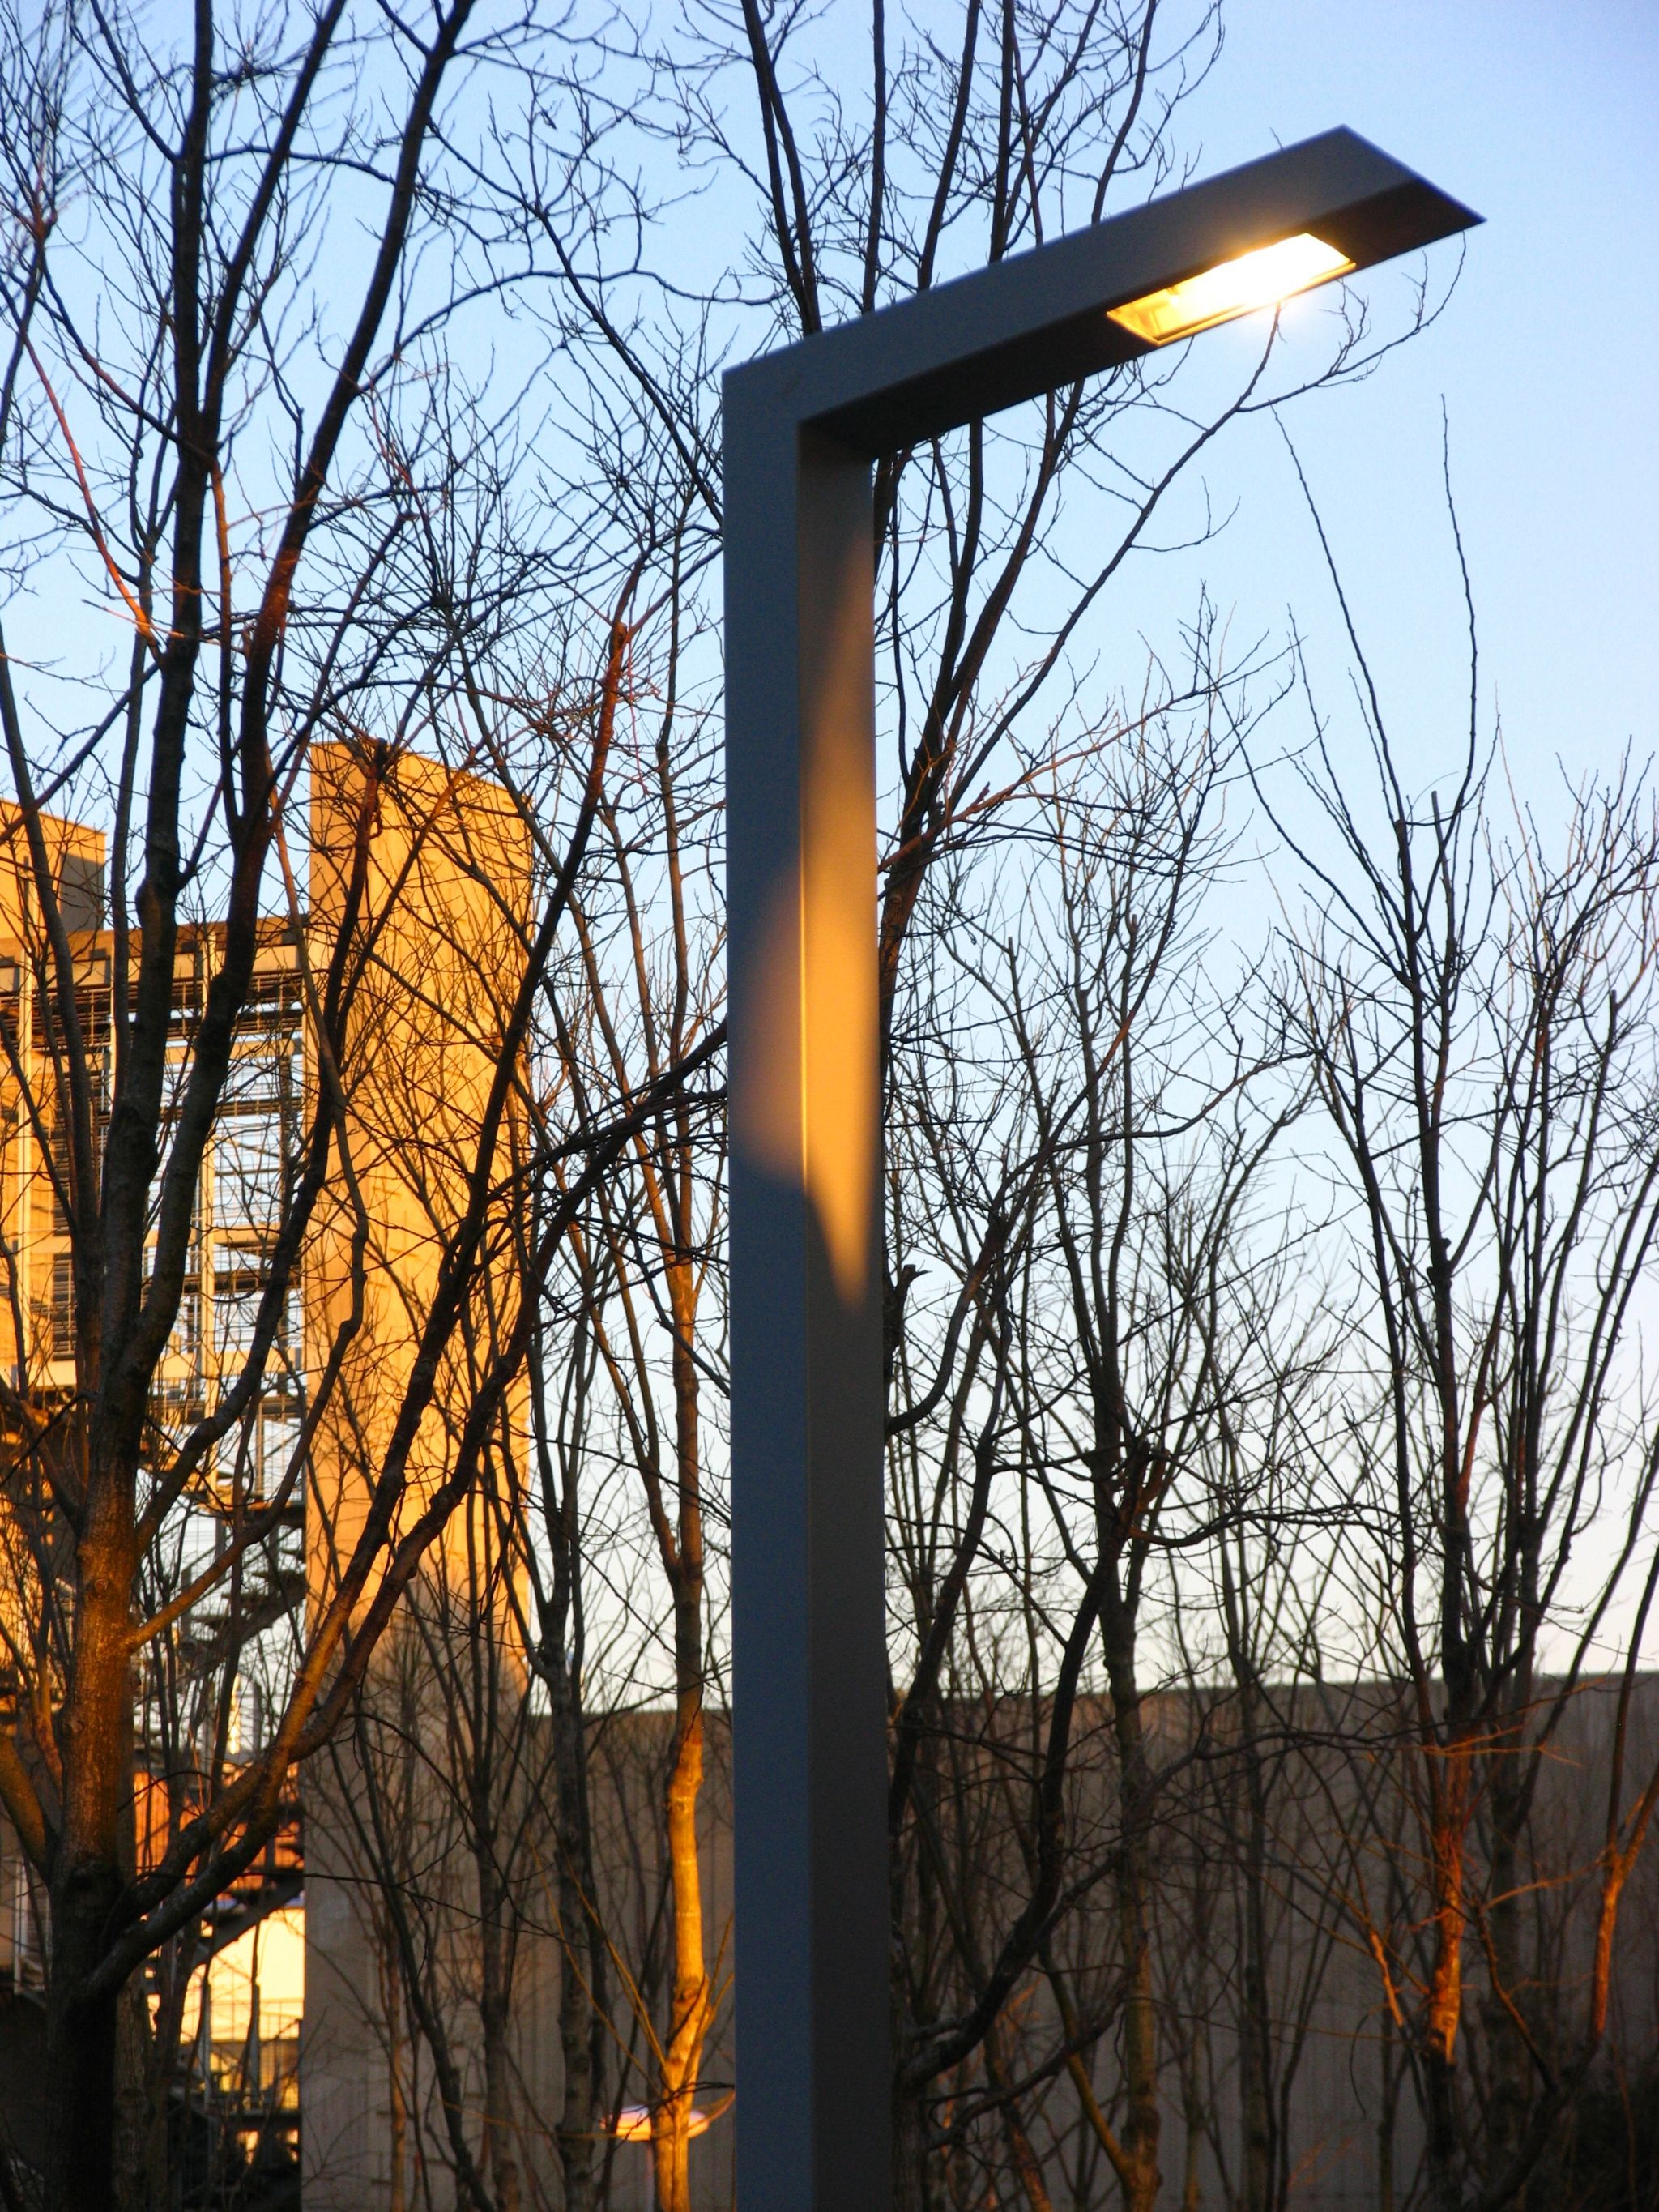 04. Bollard, Pole Lighting에 있는 핀